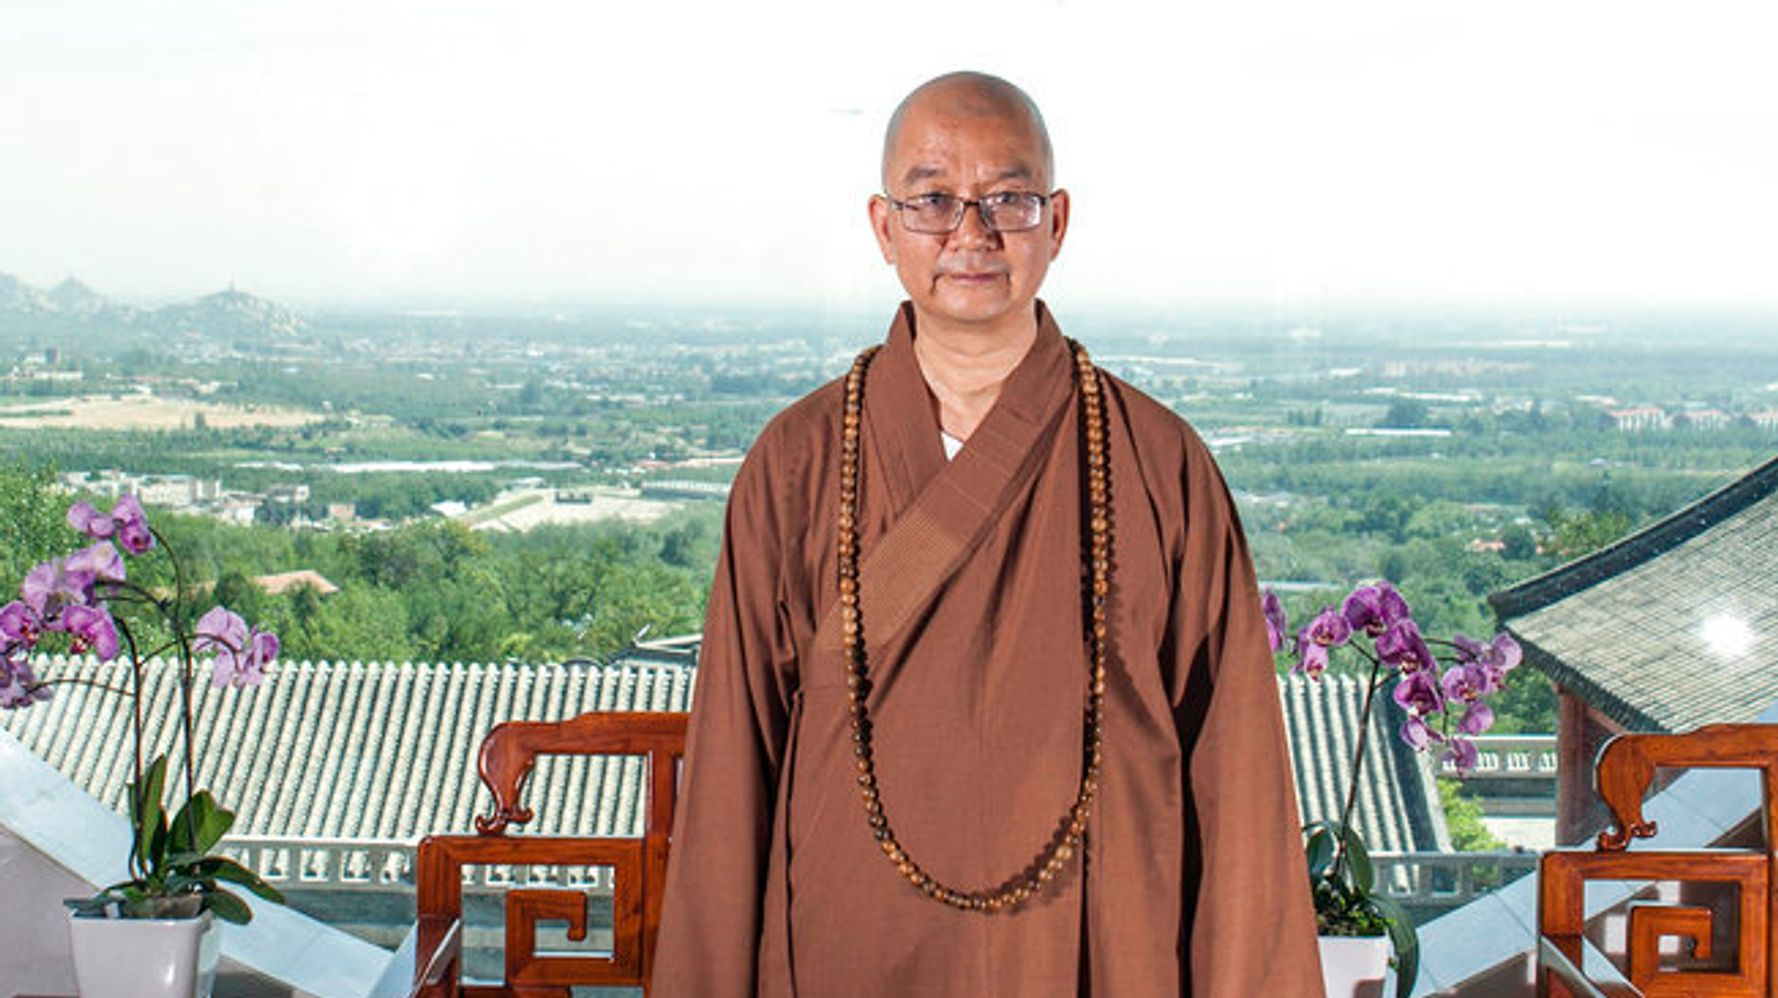 Sex Abuse Allegations Against Buddhist Monk Rock Famous ...